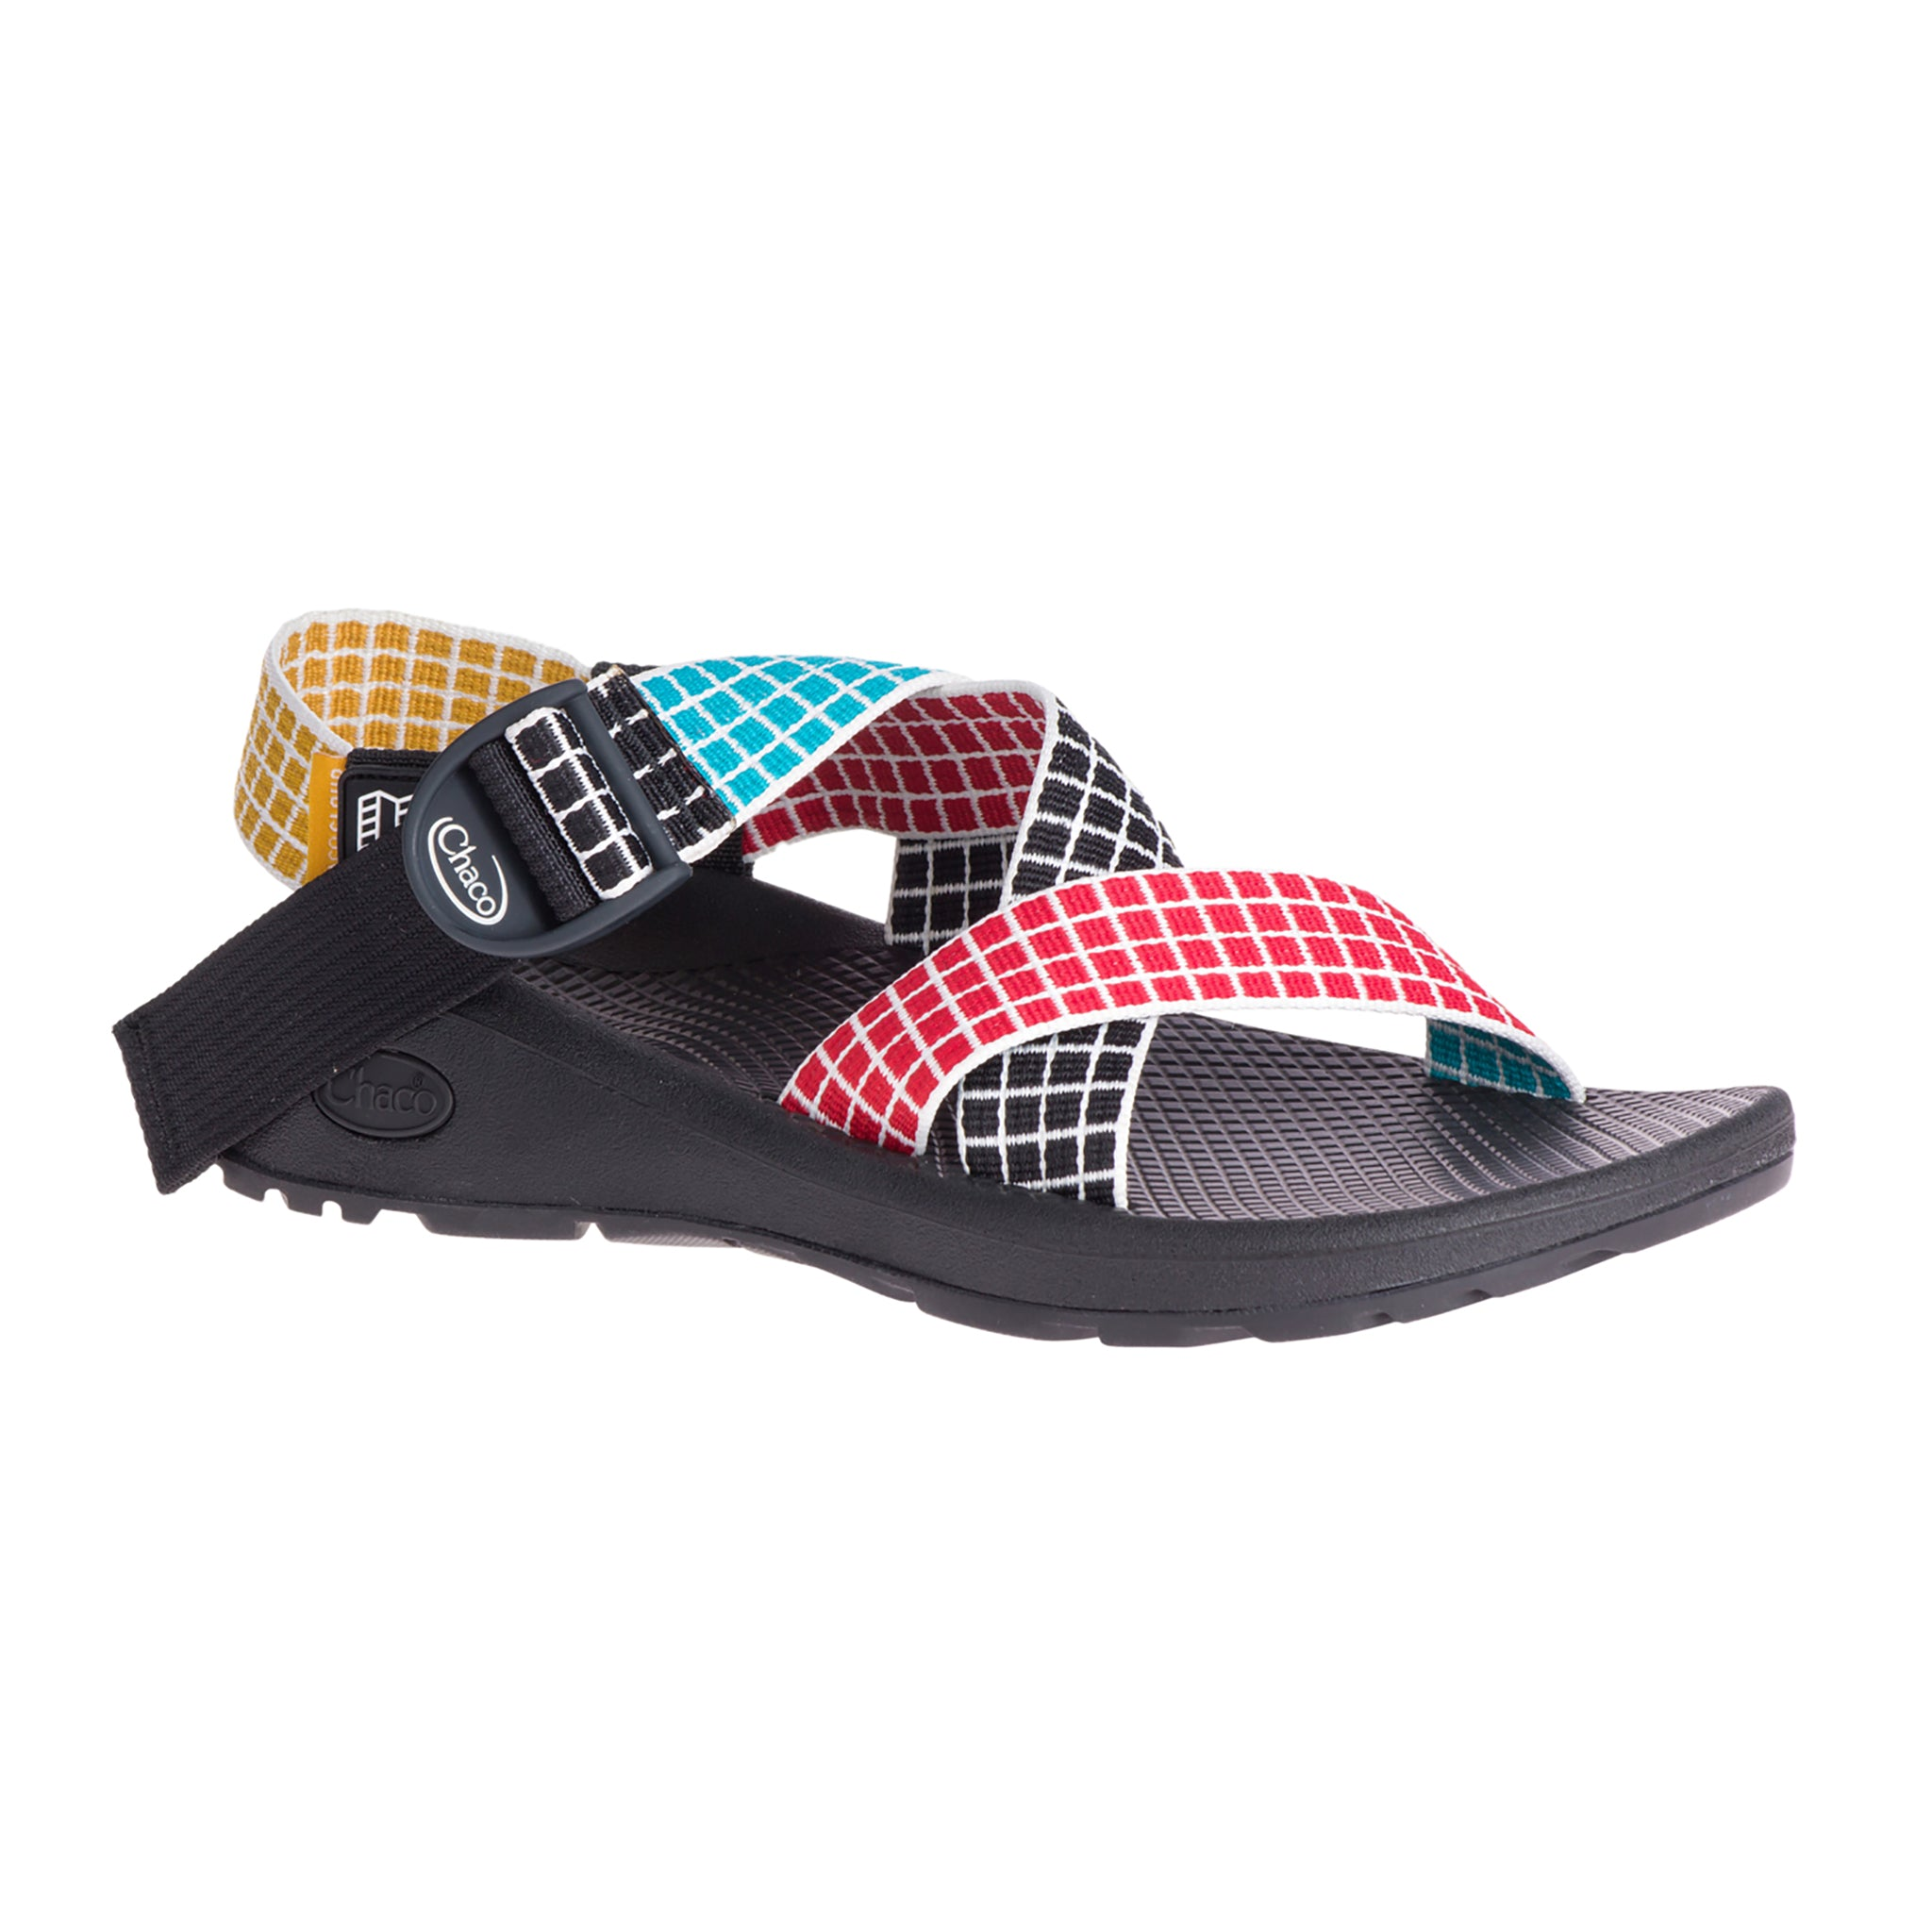 0a68ab94088800 This exclusive run of products is a perfect combination of Topo Designs and  Chaco s love for graphic elements